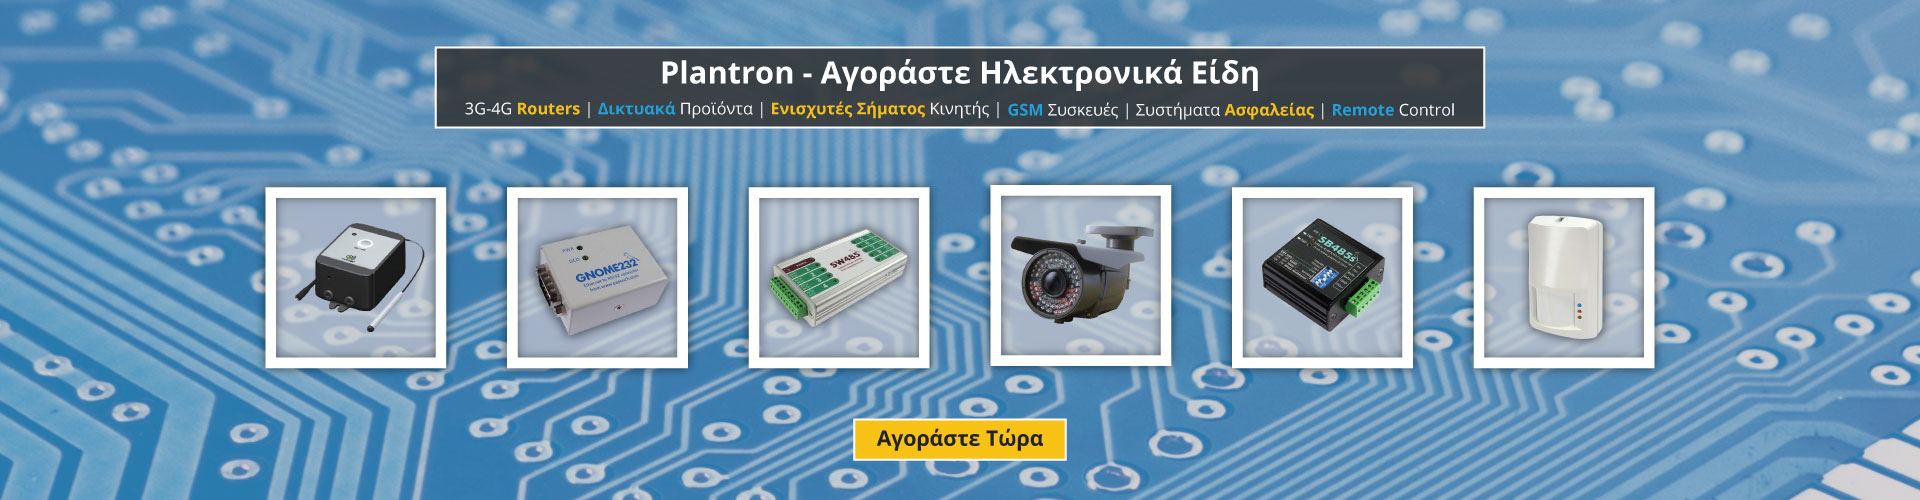 plantron products